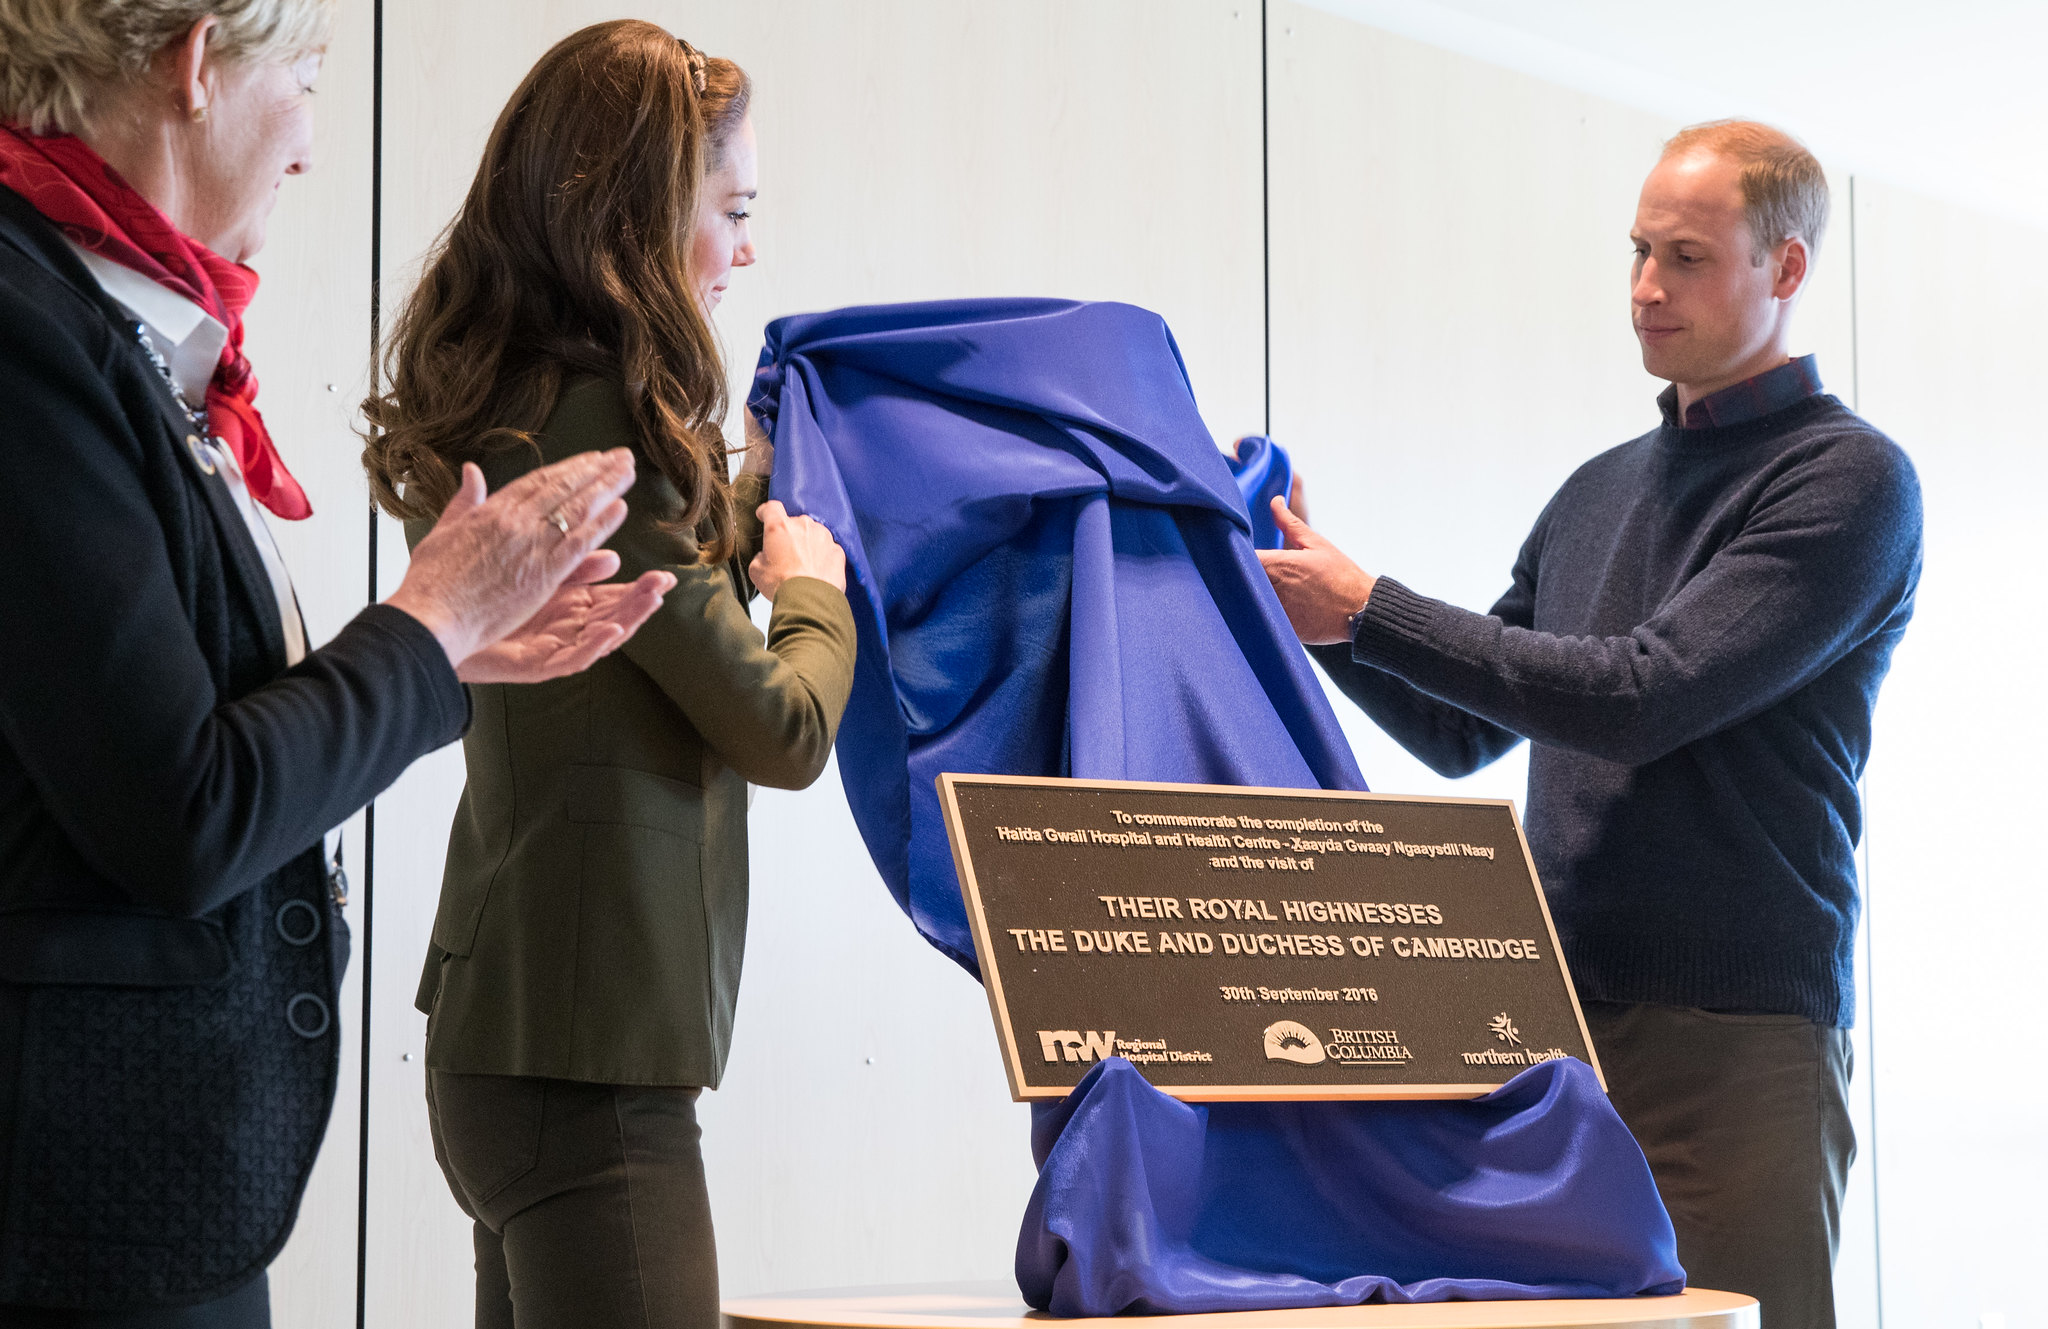 The Duke and Duches of Cambridge unveiled a plaque in Queen Charlotte during canada tour